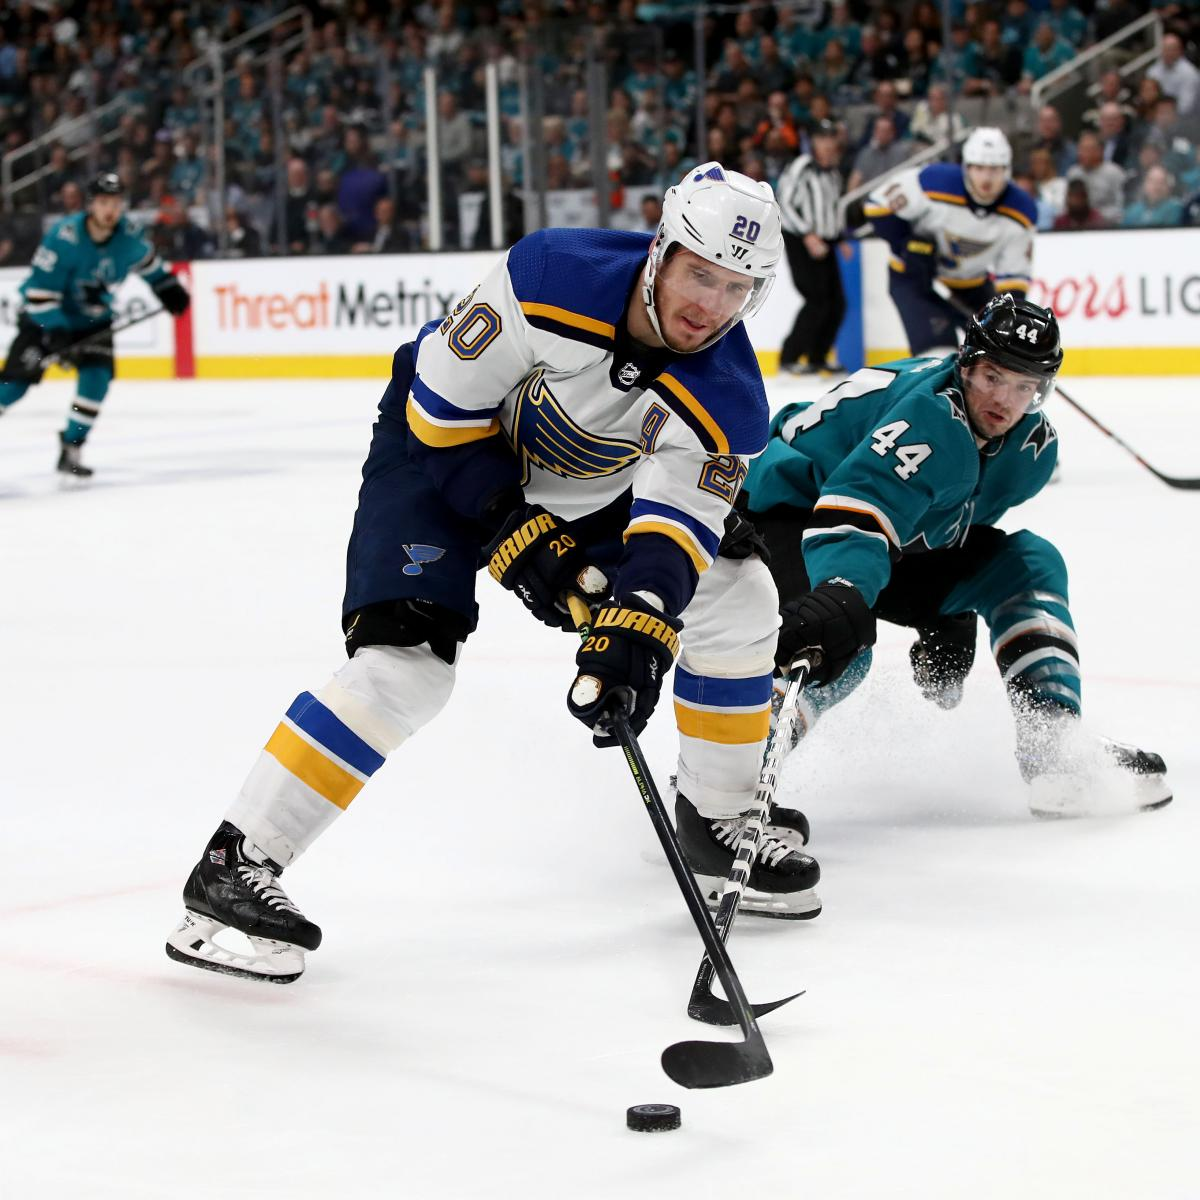 NHL Playoff Schedule 2019: Viewing Info, Predictions For